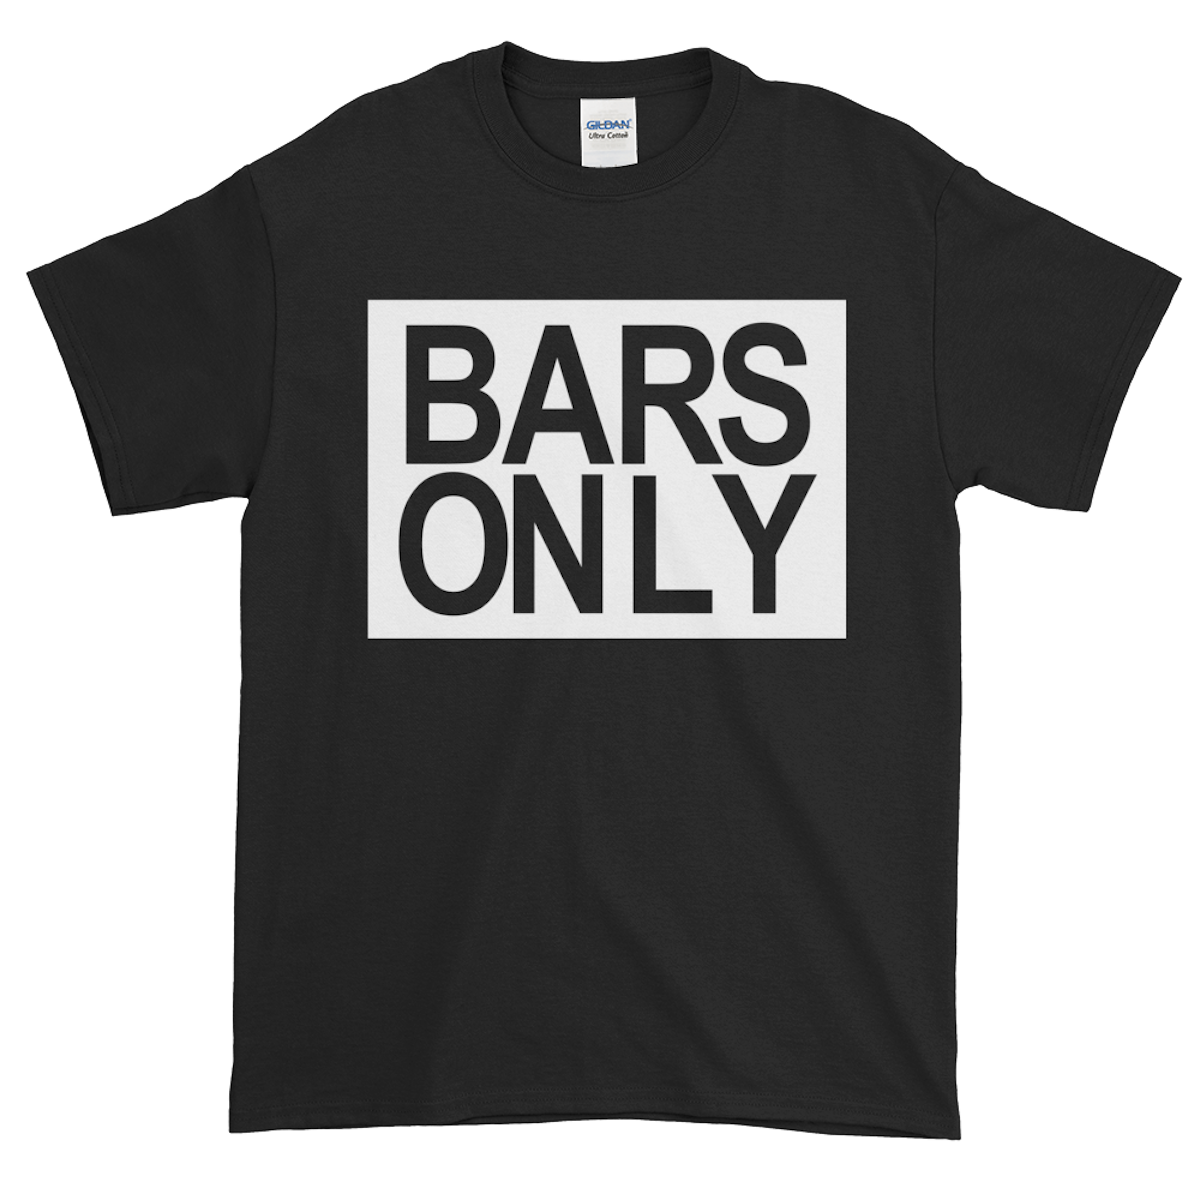 BARS ONLY Logo T Shirt - $22.99                         6 Colors